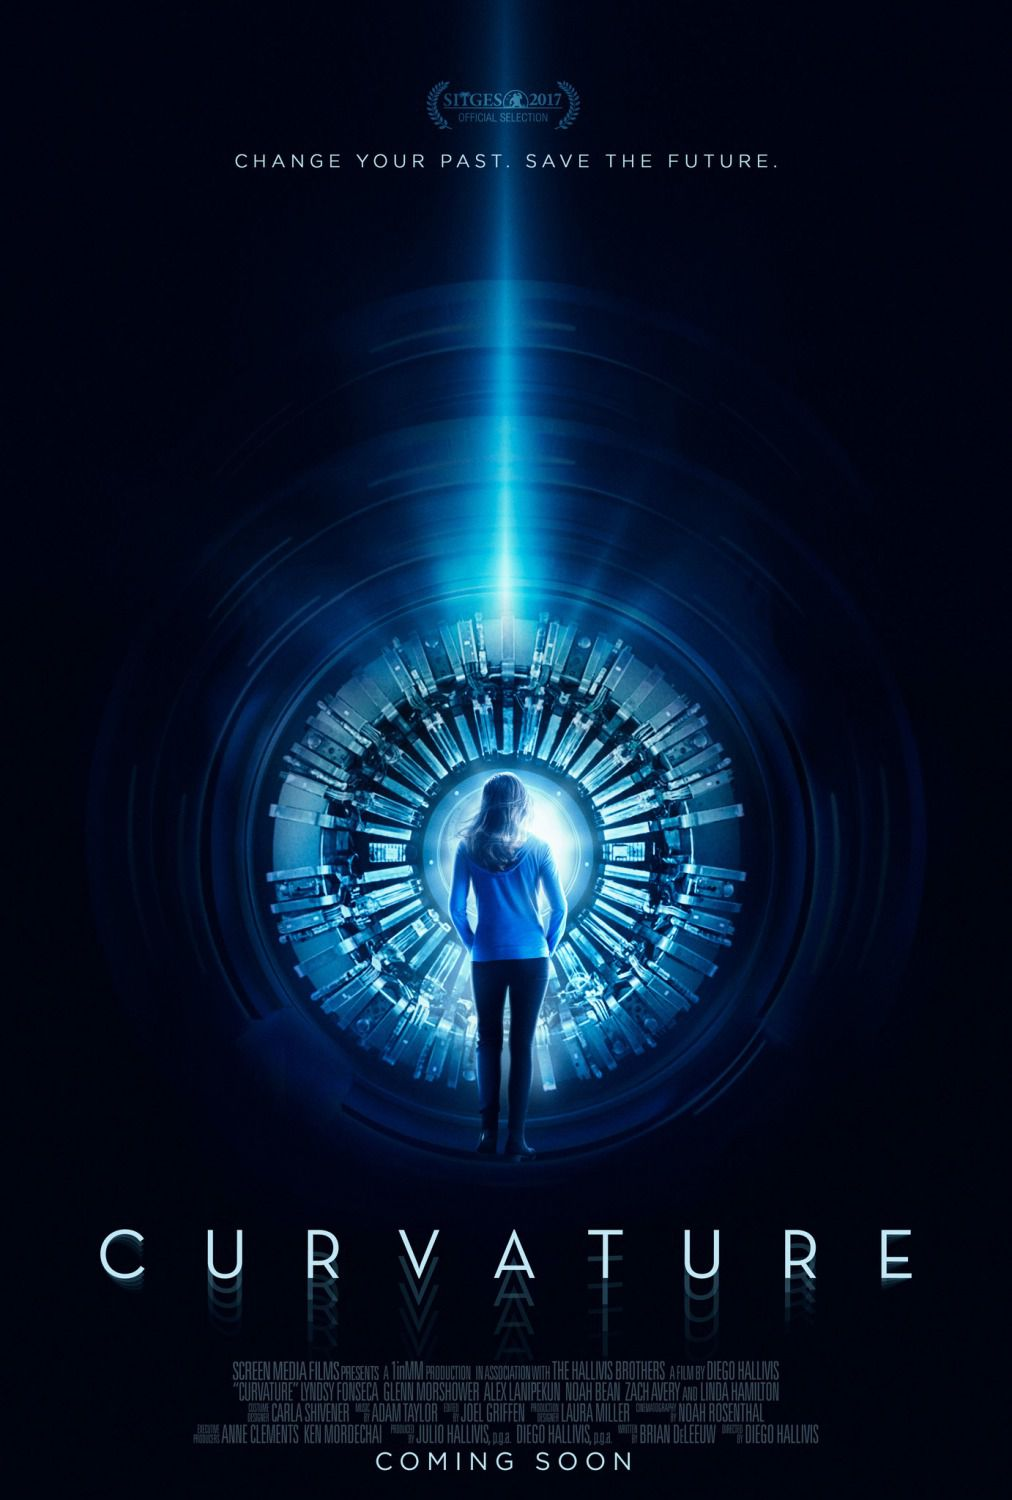 Curvature - Change your past Save the future - scifi film poster